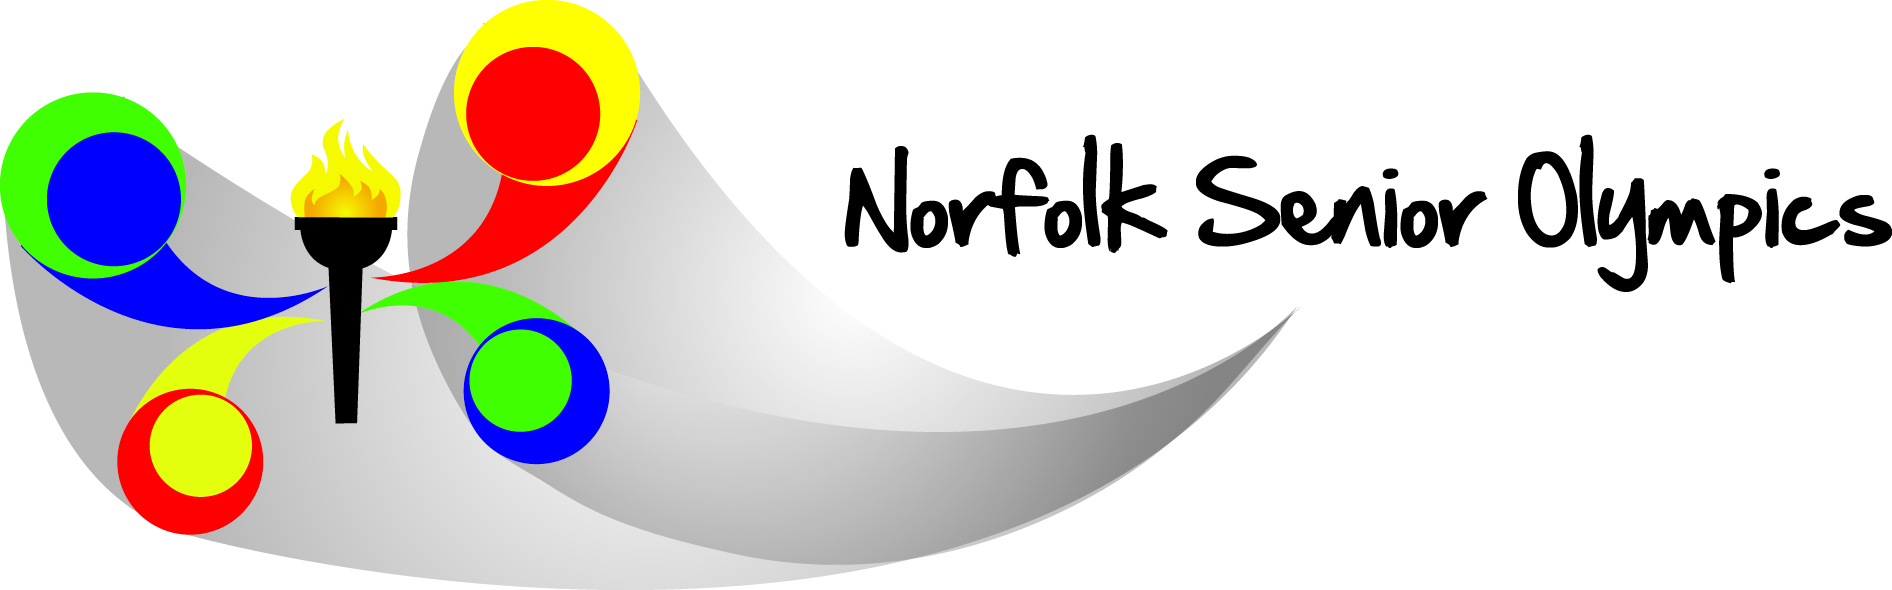 Norfolk Senior Olympics